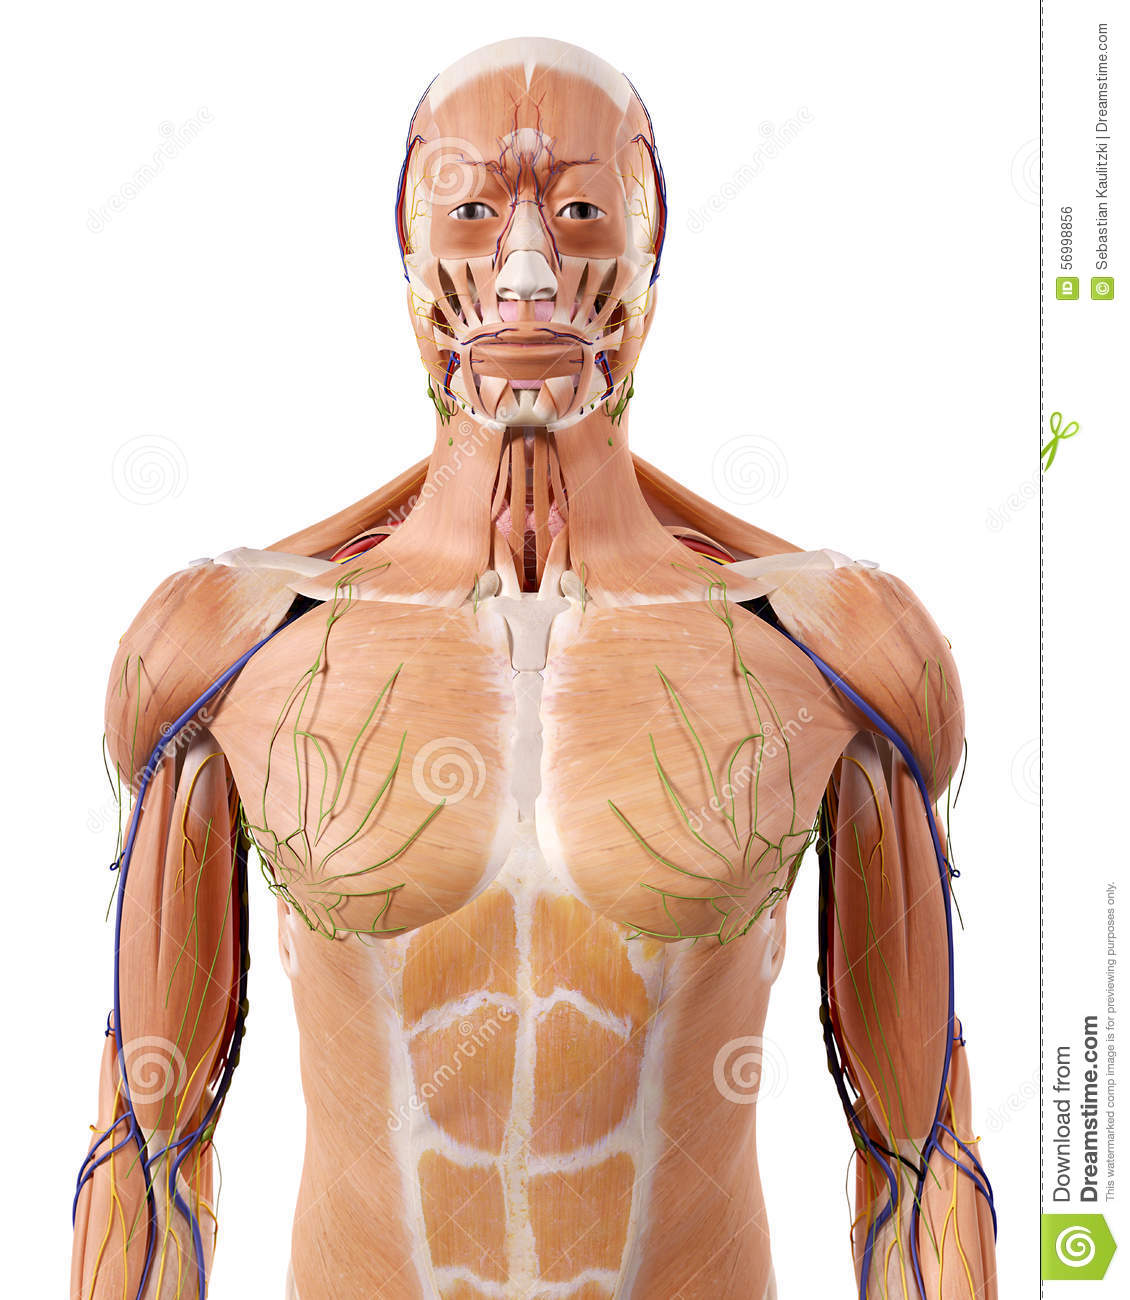 The upper body anatomy stock illustration. Illustration of ligament ...